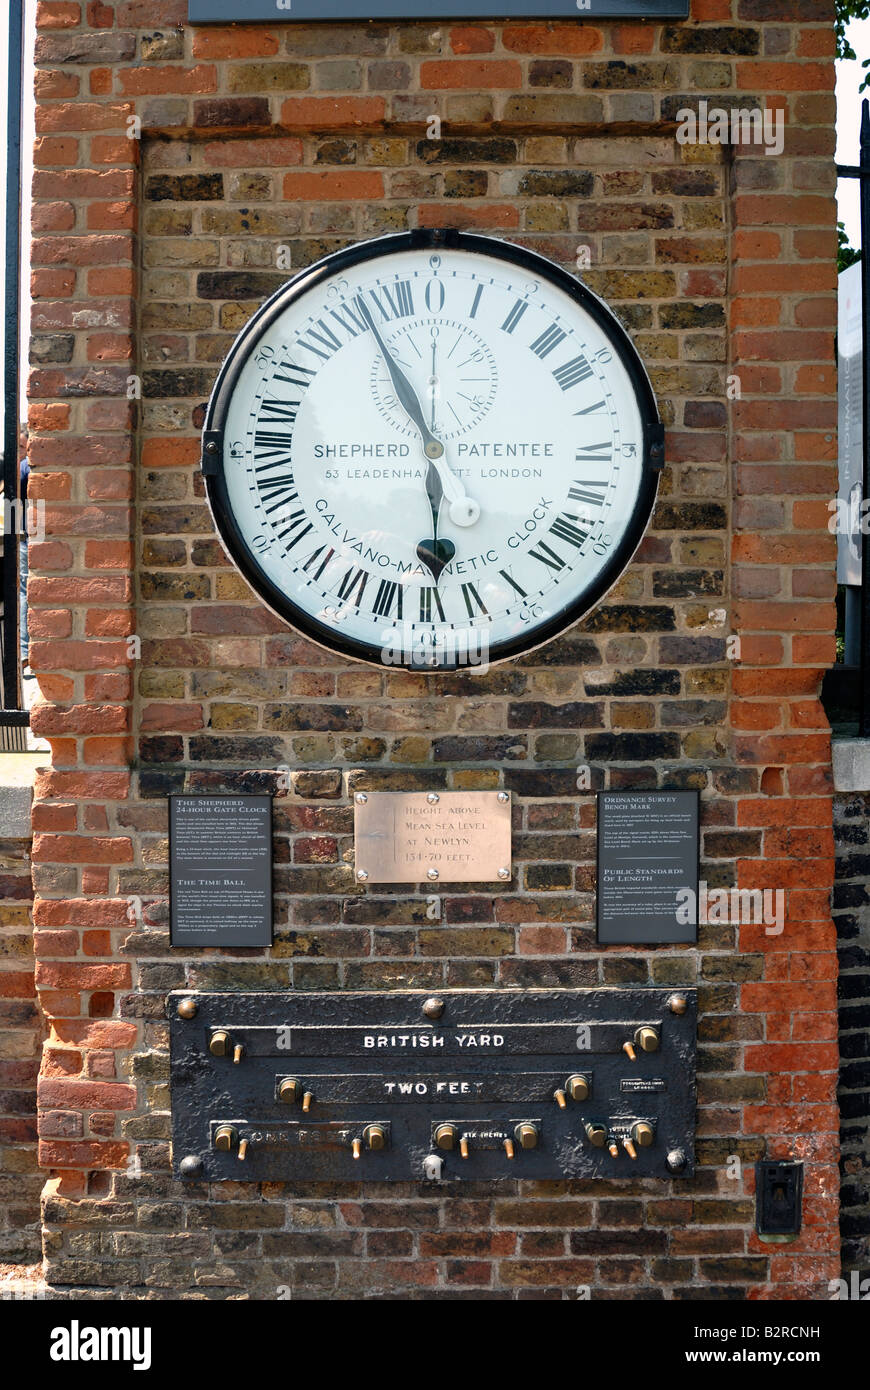 24 hour clock, Royal Observatory,Greenwich - Stock Image